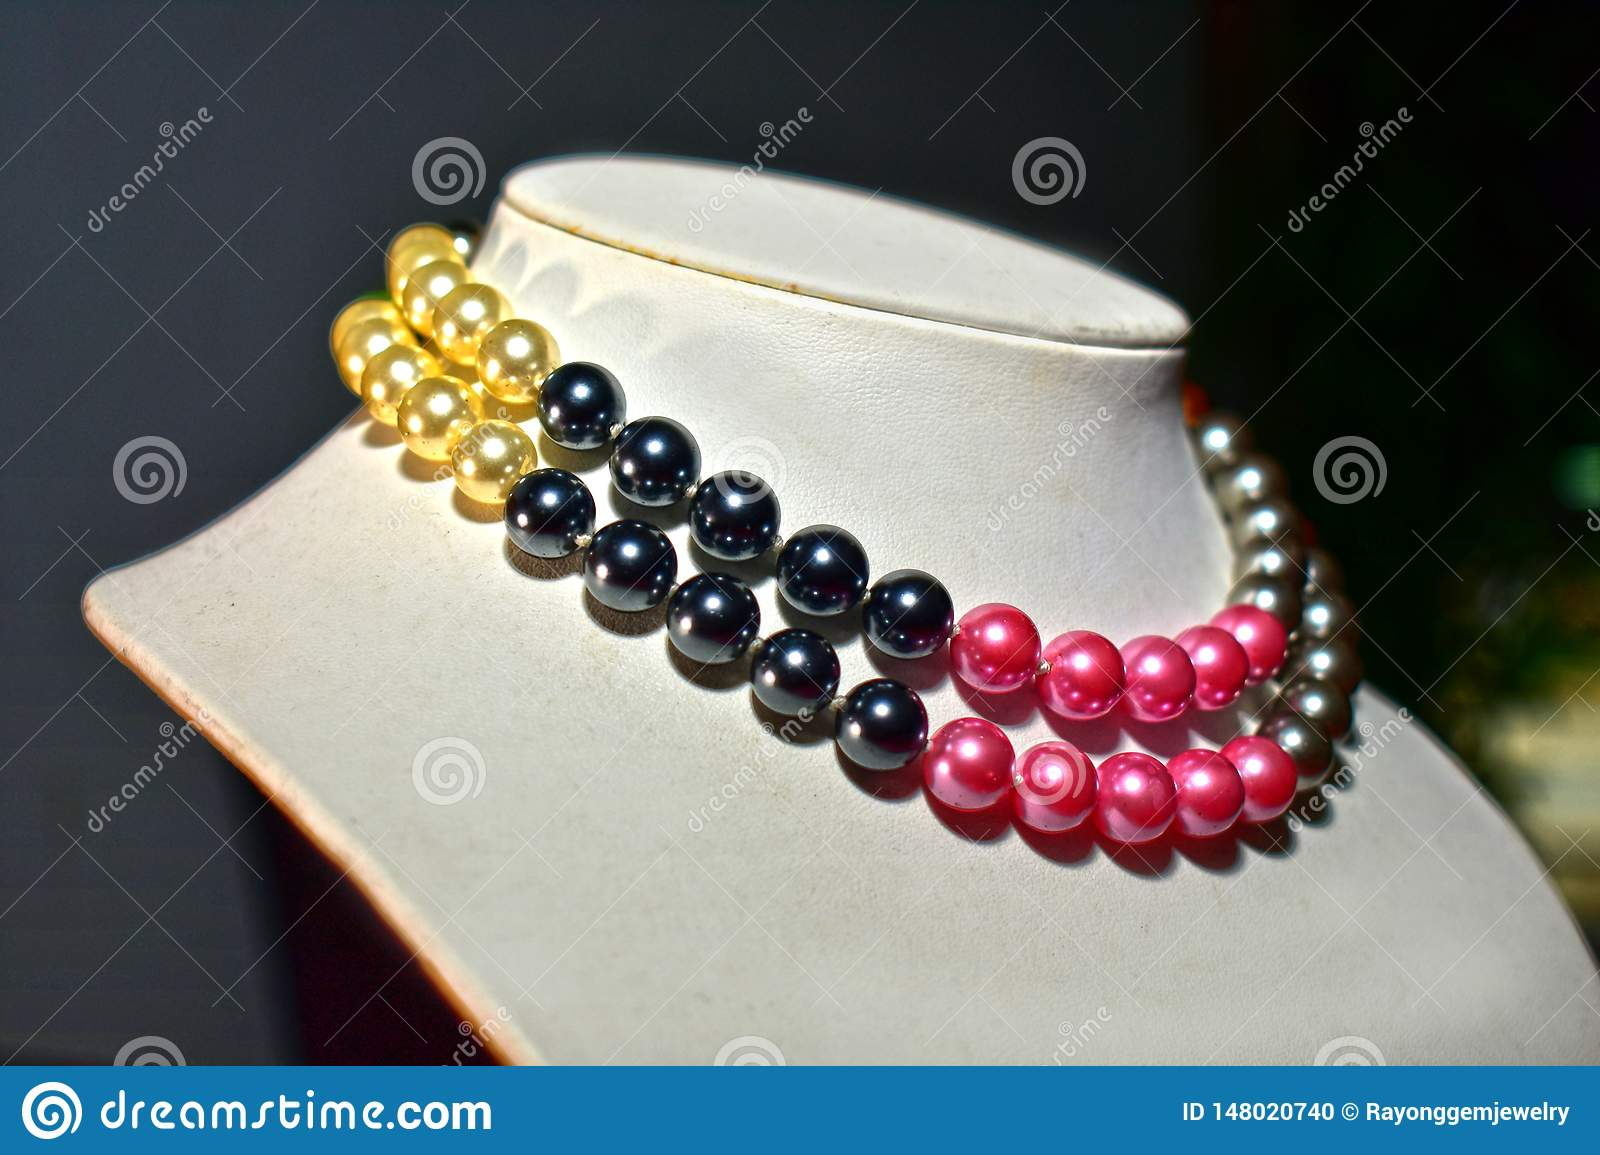 Natural Pearl Necklace Beautiful And Expensive As Jewelry For